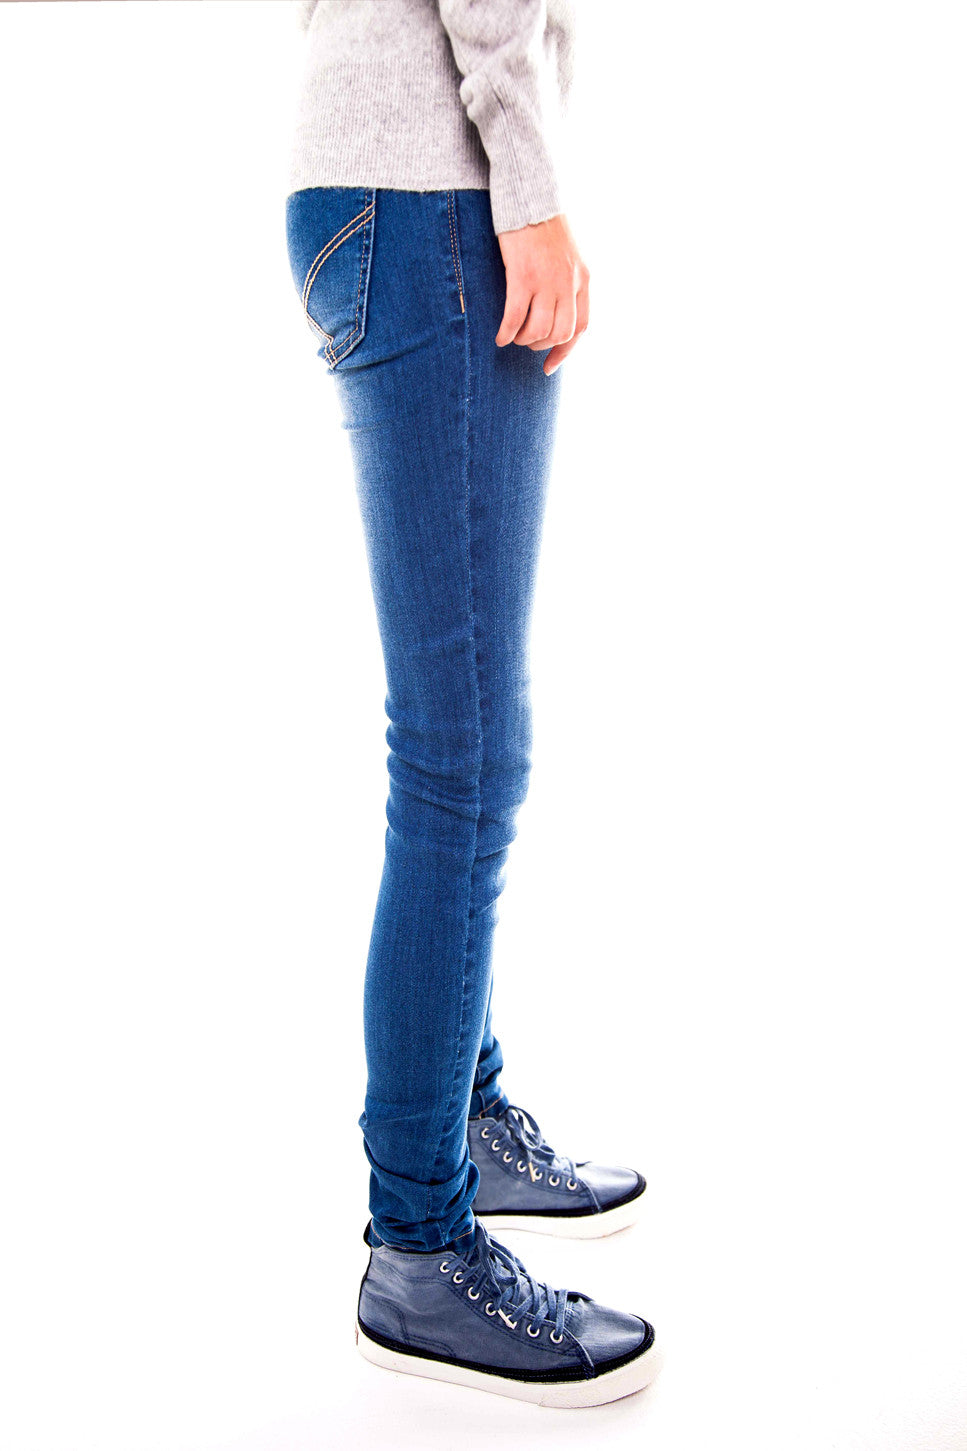 The Women's Skinny Denim Jeans